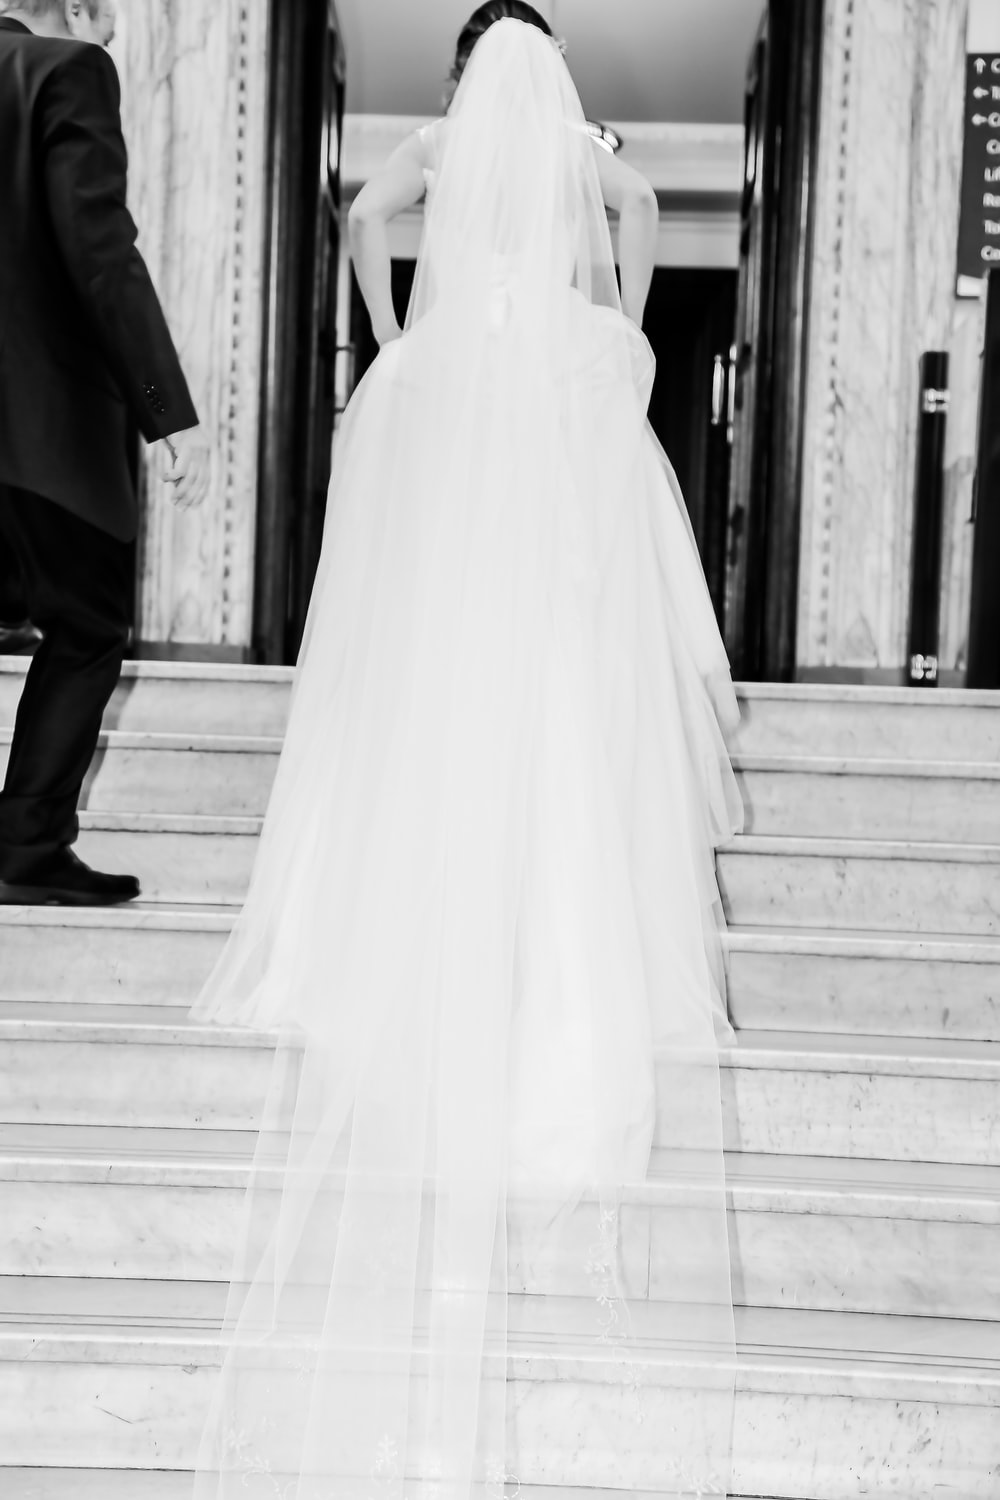 woman in wedding dress waking on stairs